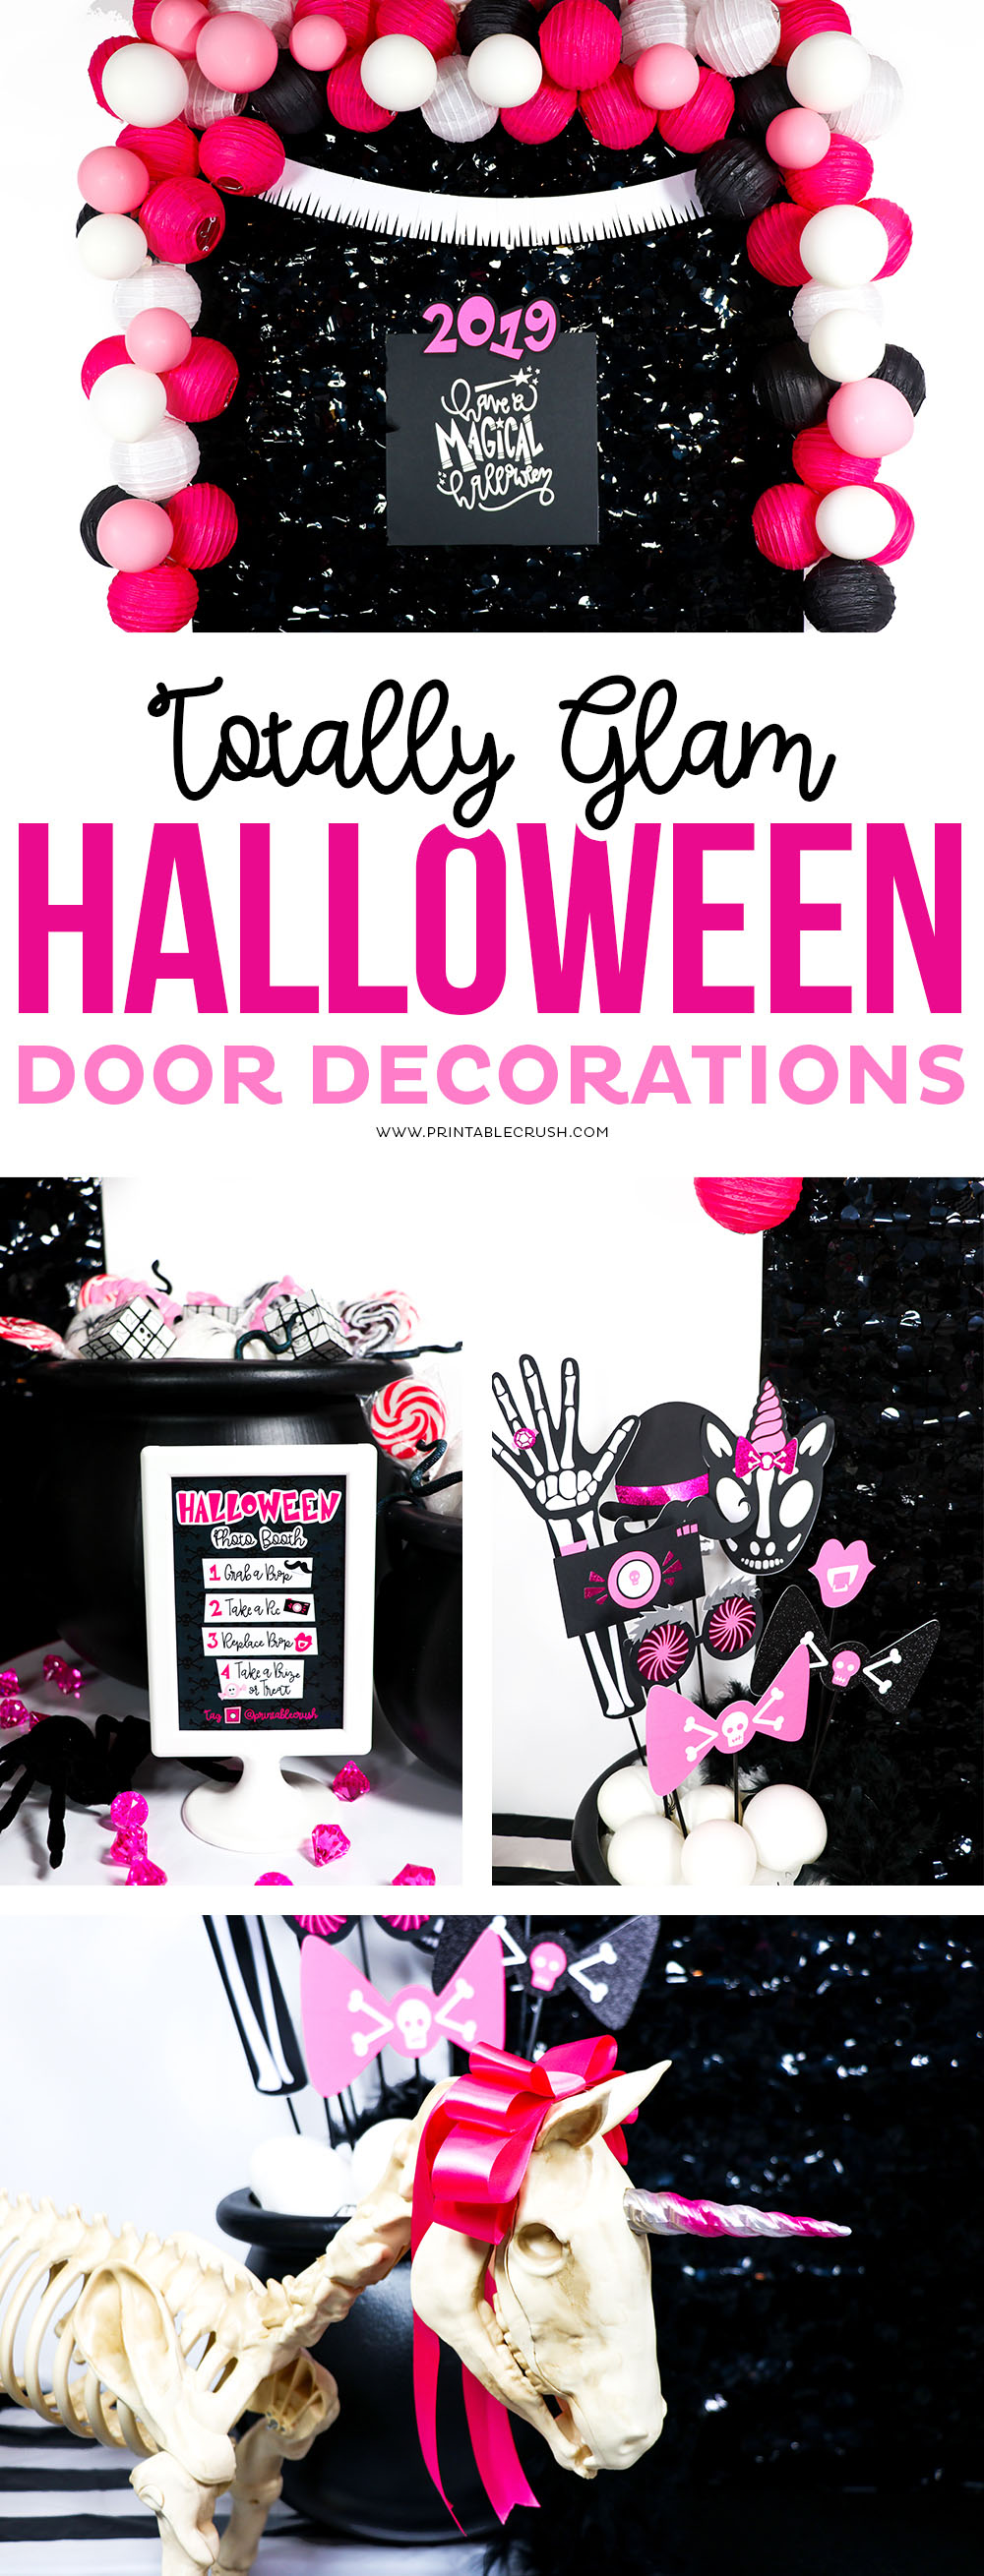 From the Unicorn Skeleton to the fab photo props, you'll be the most stylish house on the street this year with these Glam Halloween Door Decorations!  #halloween #glamhalloween #halloweendoordecor #halloweendoordecorations #halloweenphotobooth #halloweenphotoprops #trickortreatideas #noncandyhalloweentreats via @printablecrush